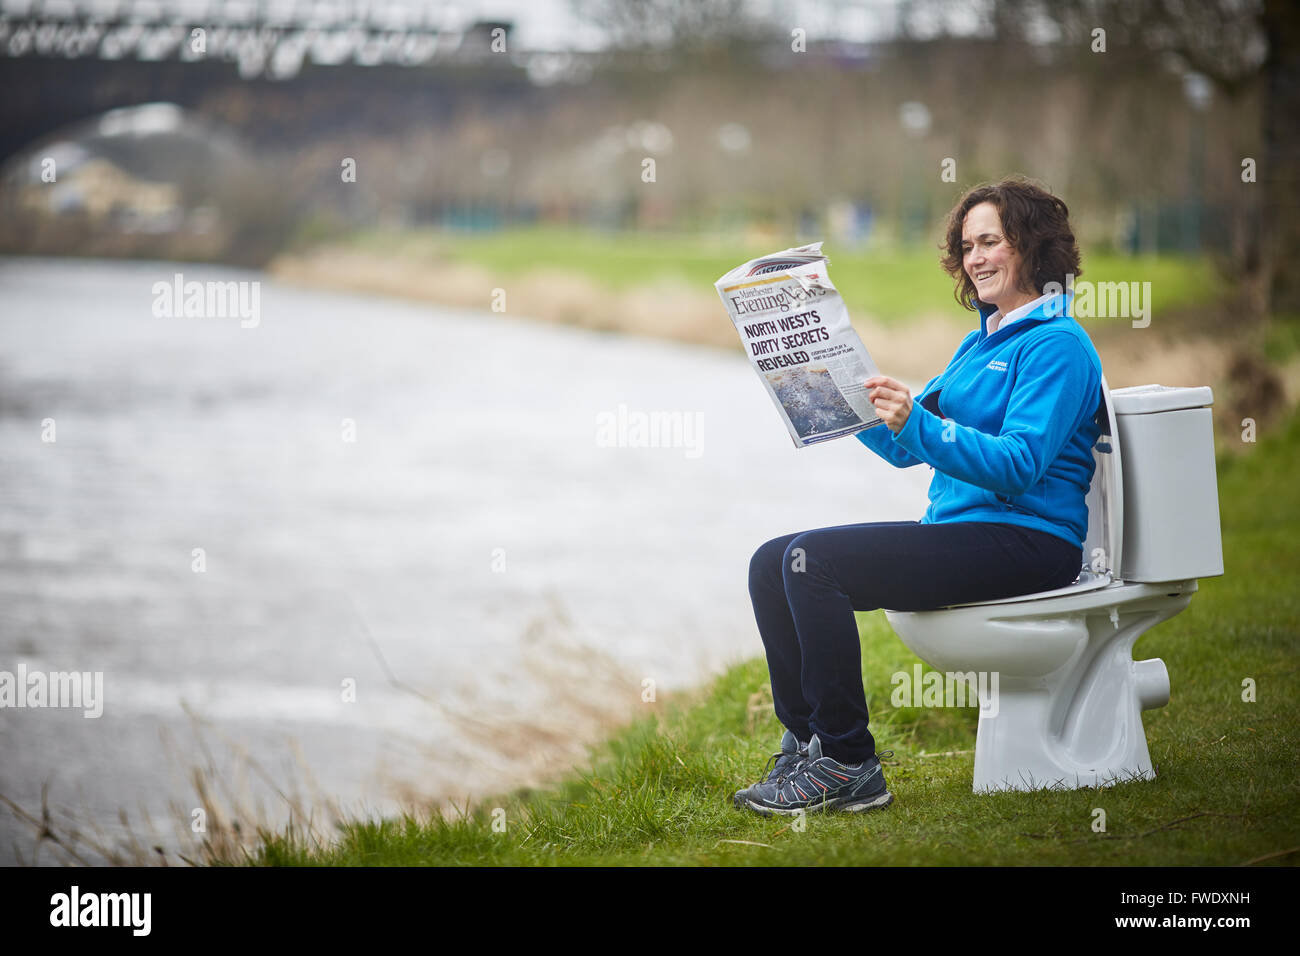 Sat on a toilet reading newspaper loo potty urinal sitting using sewage - Stock Image